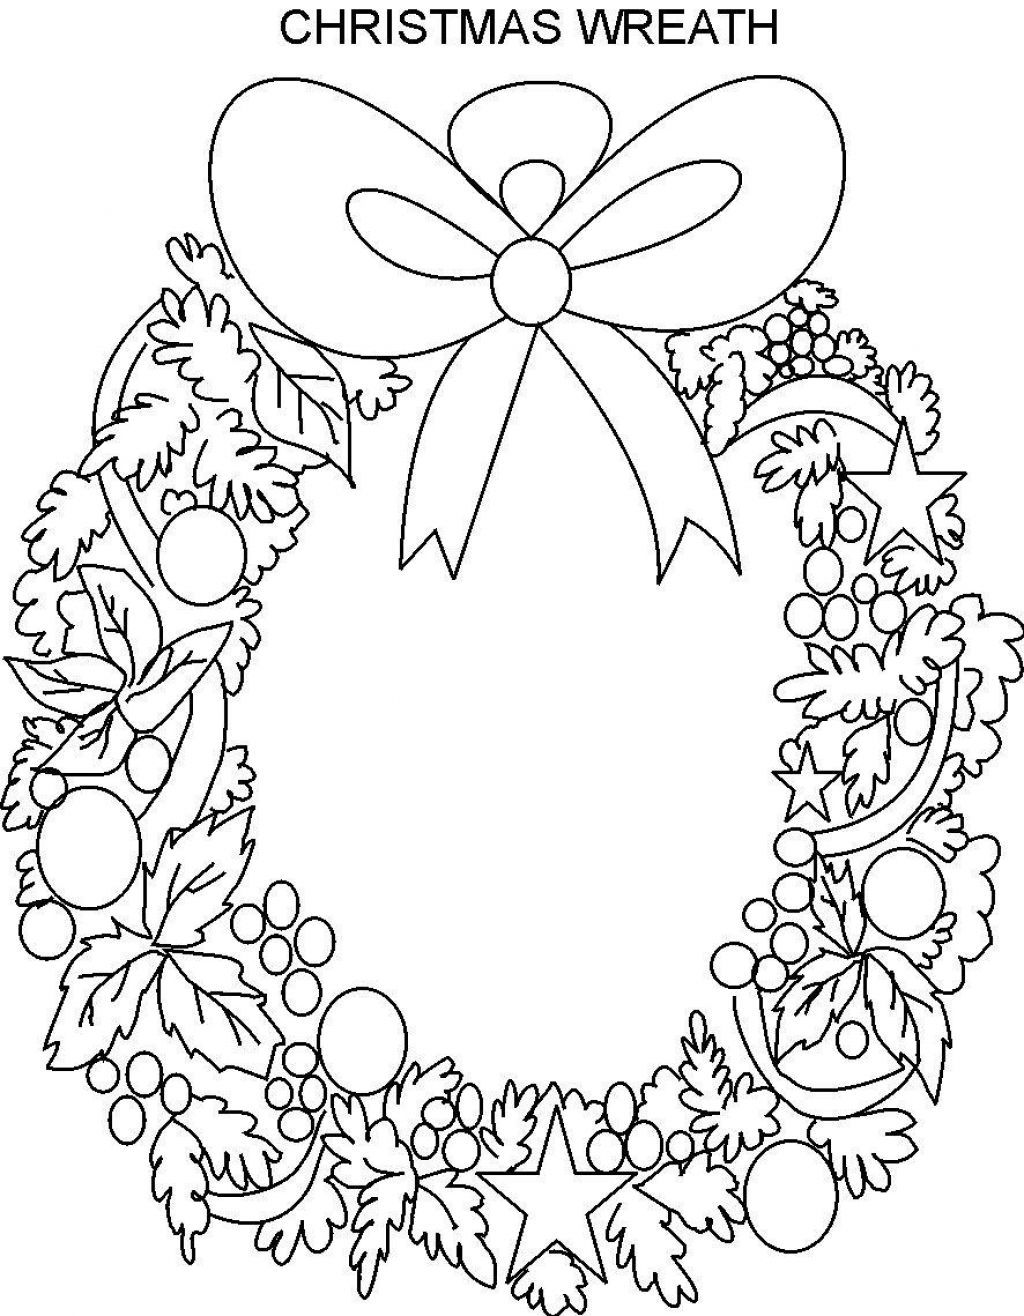 coloring christmas wreath template christmas wreath sheets coloring pages christmas template wreath coloring